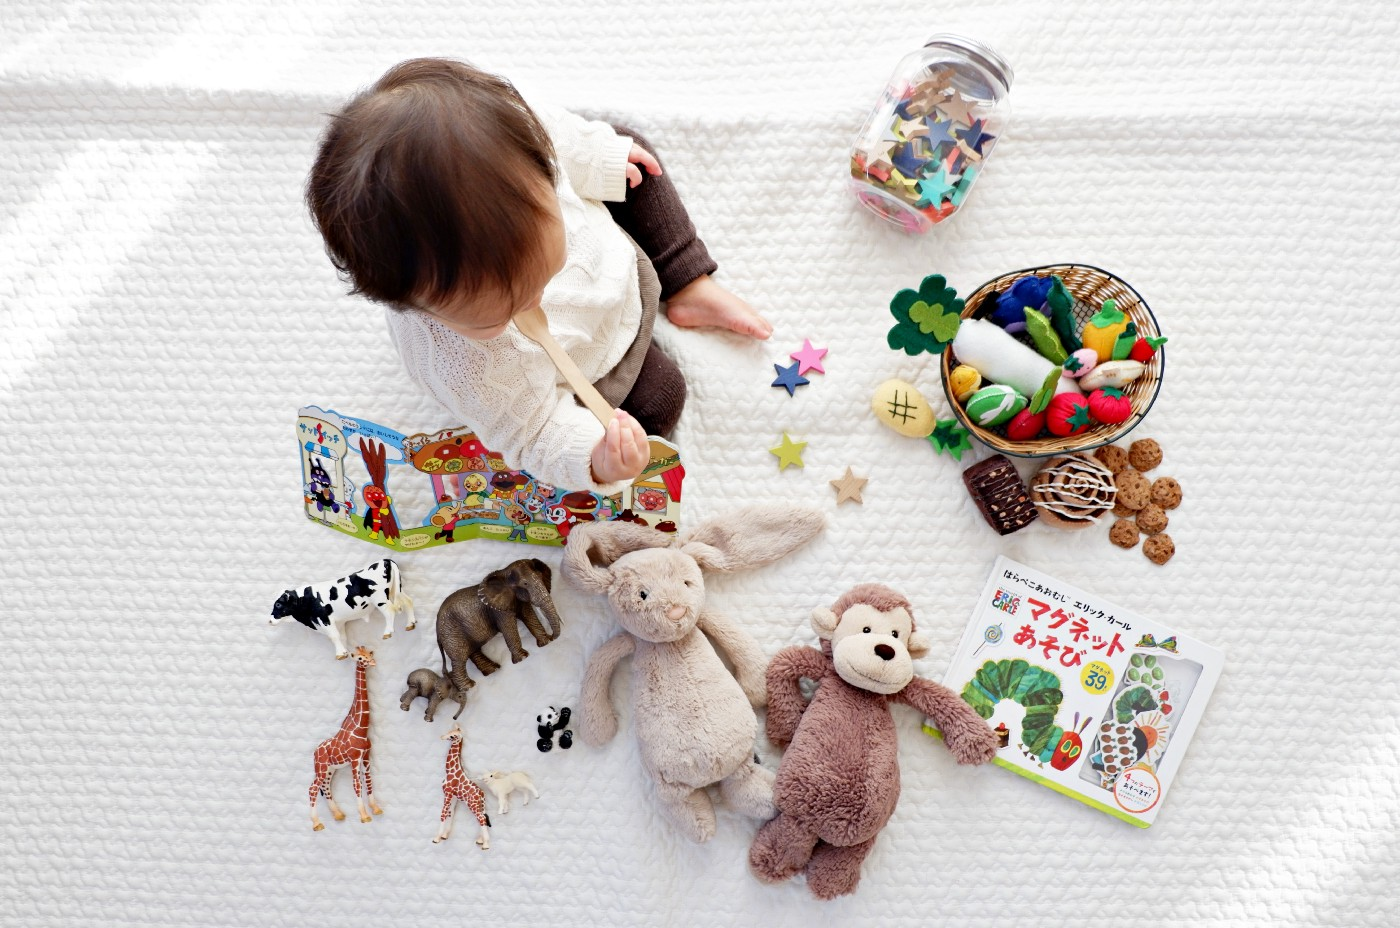 young toddler on white blanket deciding what toy to play with